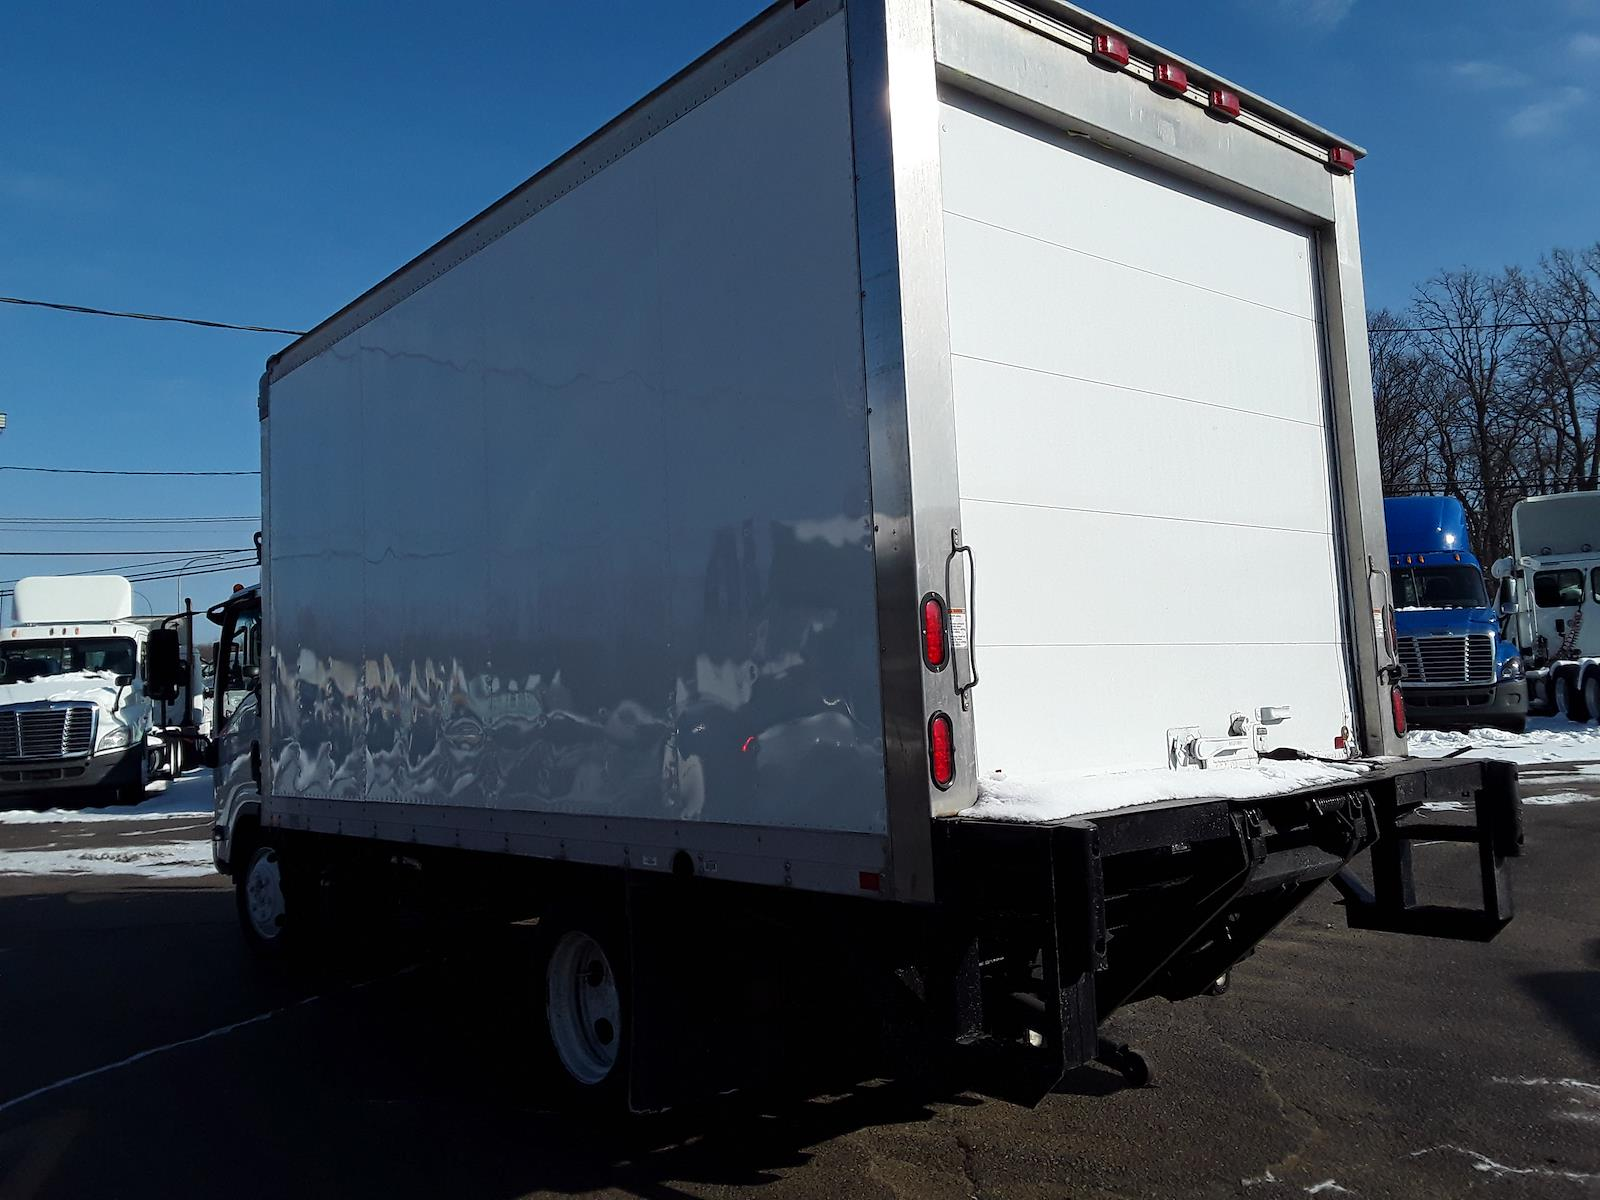 2015 Isuzu NQR Regular Cab 4x2, Refrigerated Body #640307 - photo 1